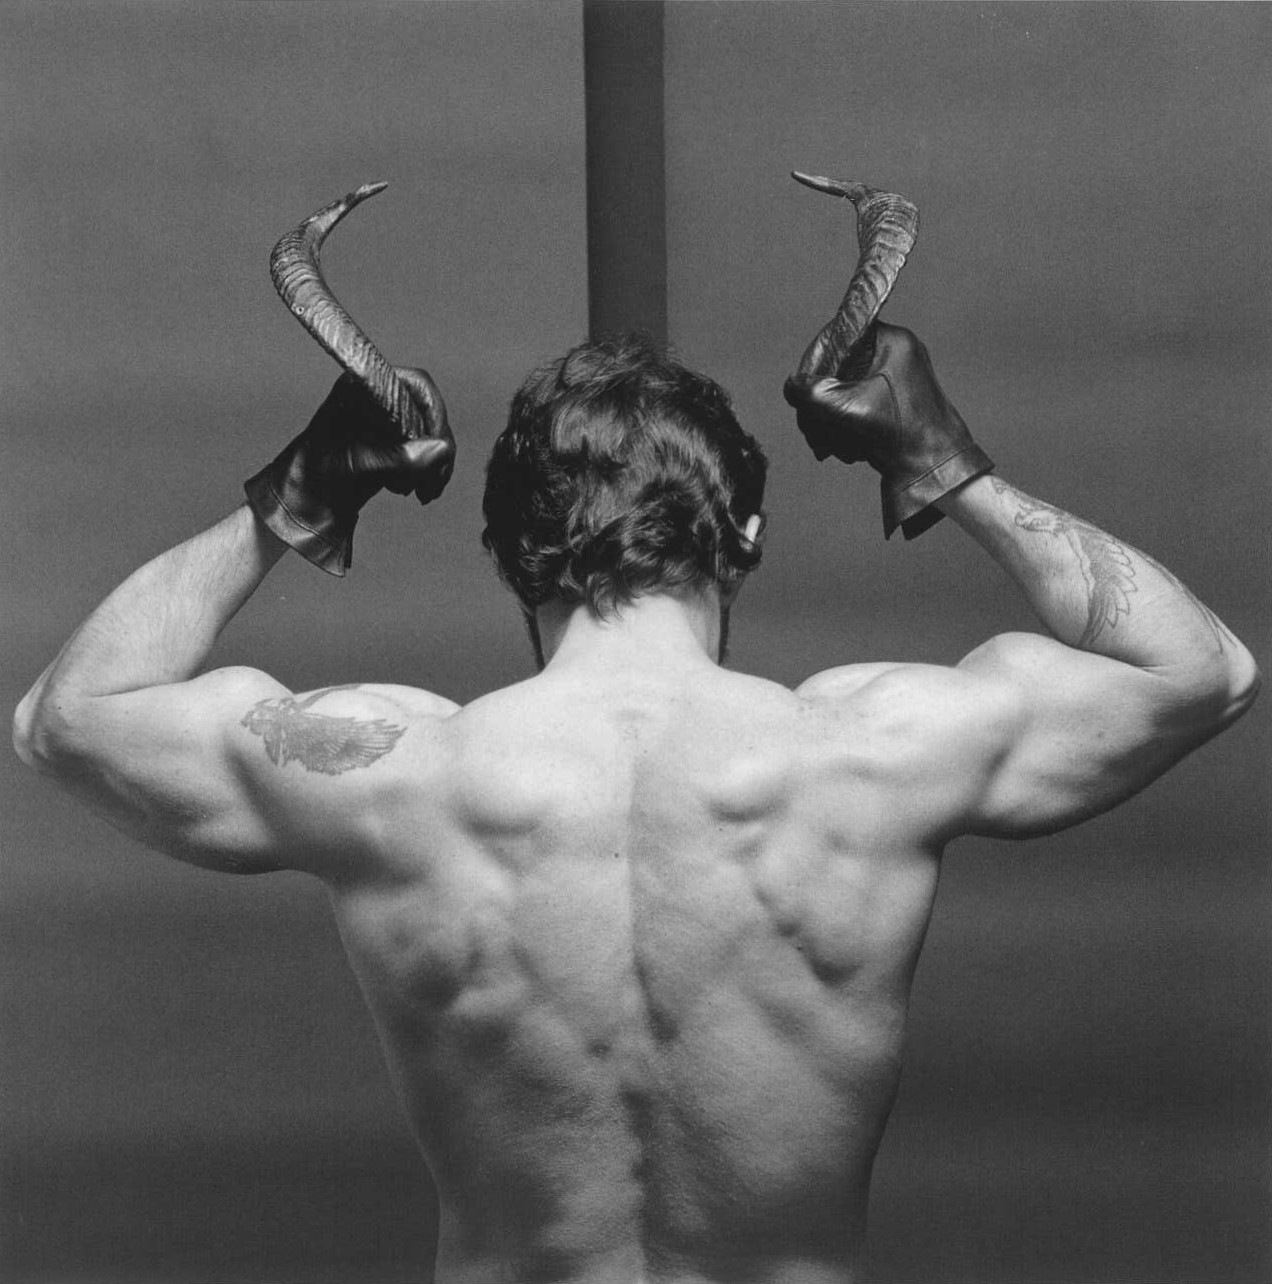 frank diaz photography robert mapplethorpe 1980